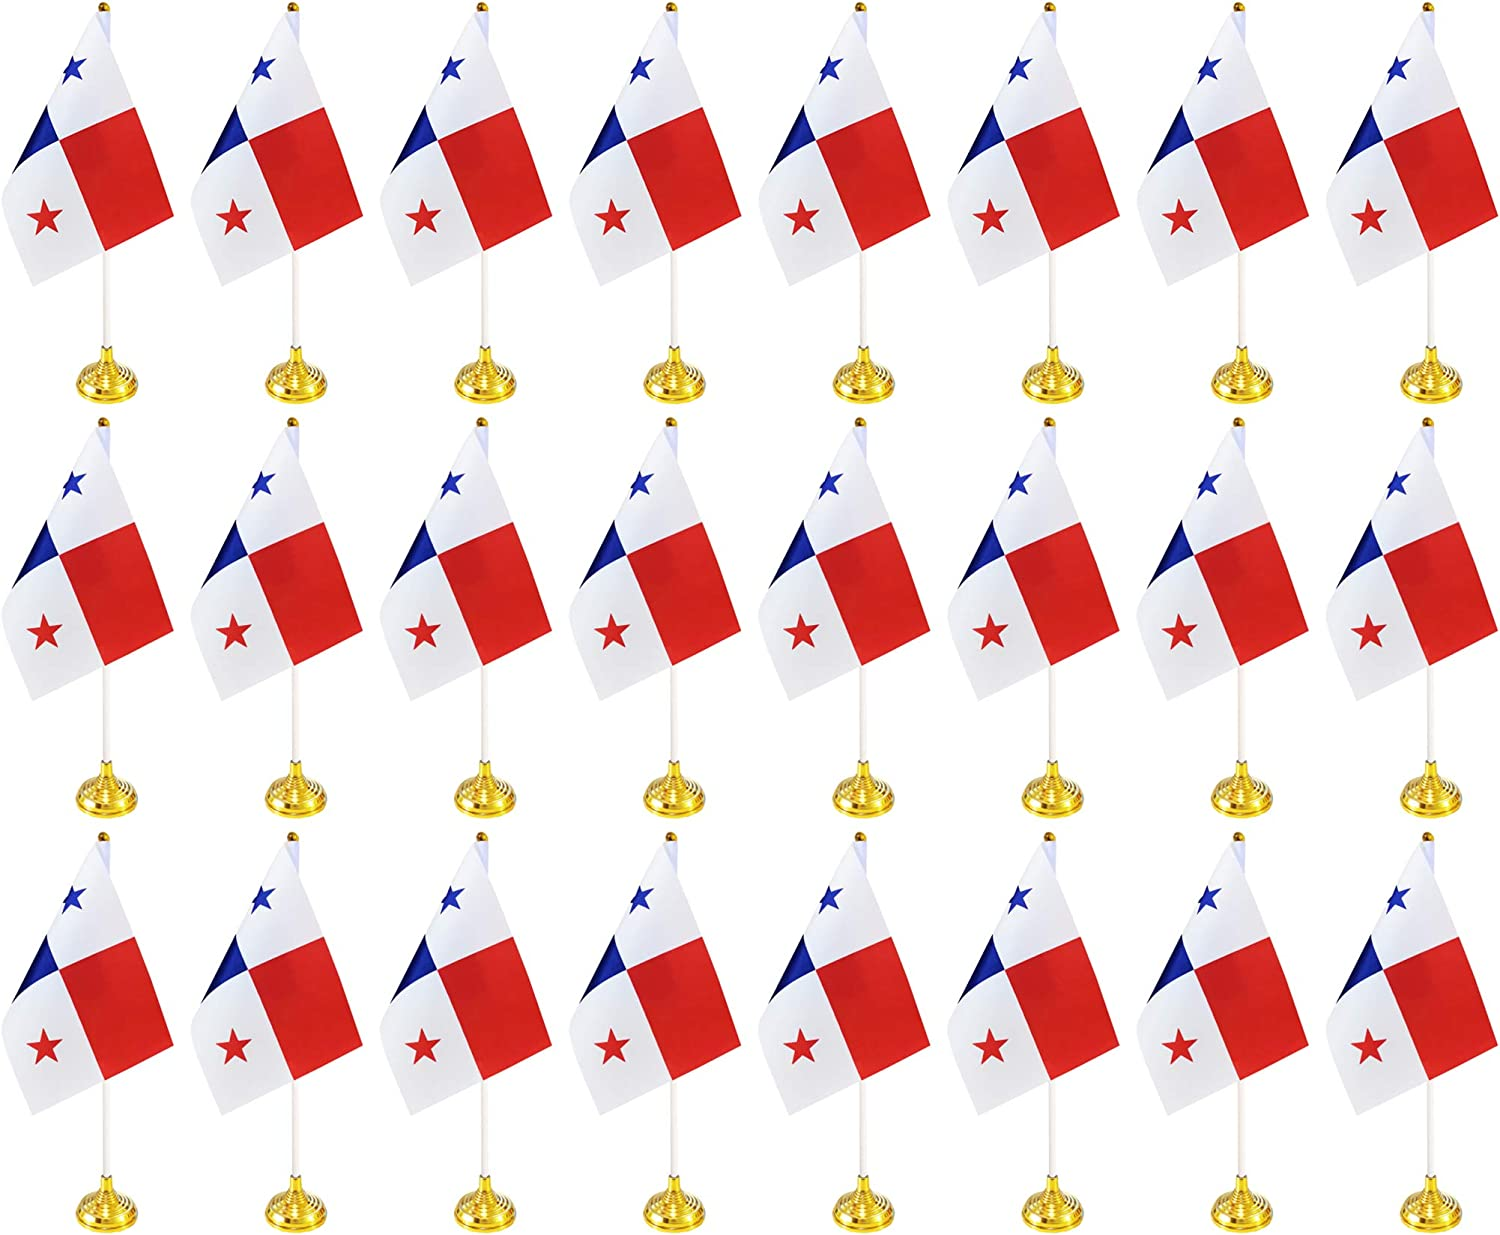 BCLin 24 Pack Panama Desk Flags,Small Mini Panamanian Deluxe Table Flags Set with Stand Base,8.2 x 5.5 inches Miniature Desktop Flag